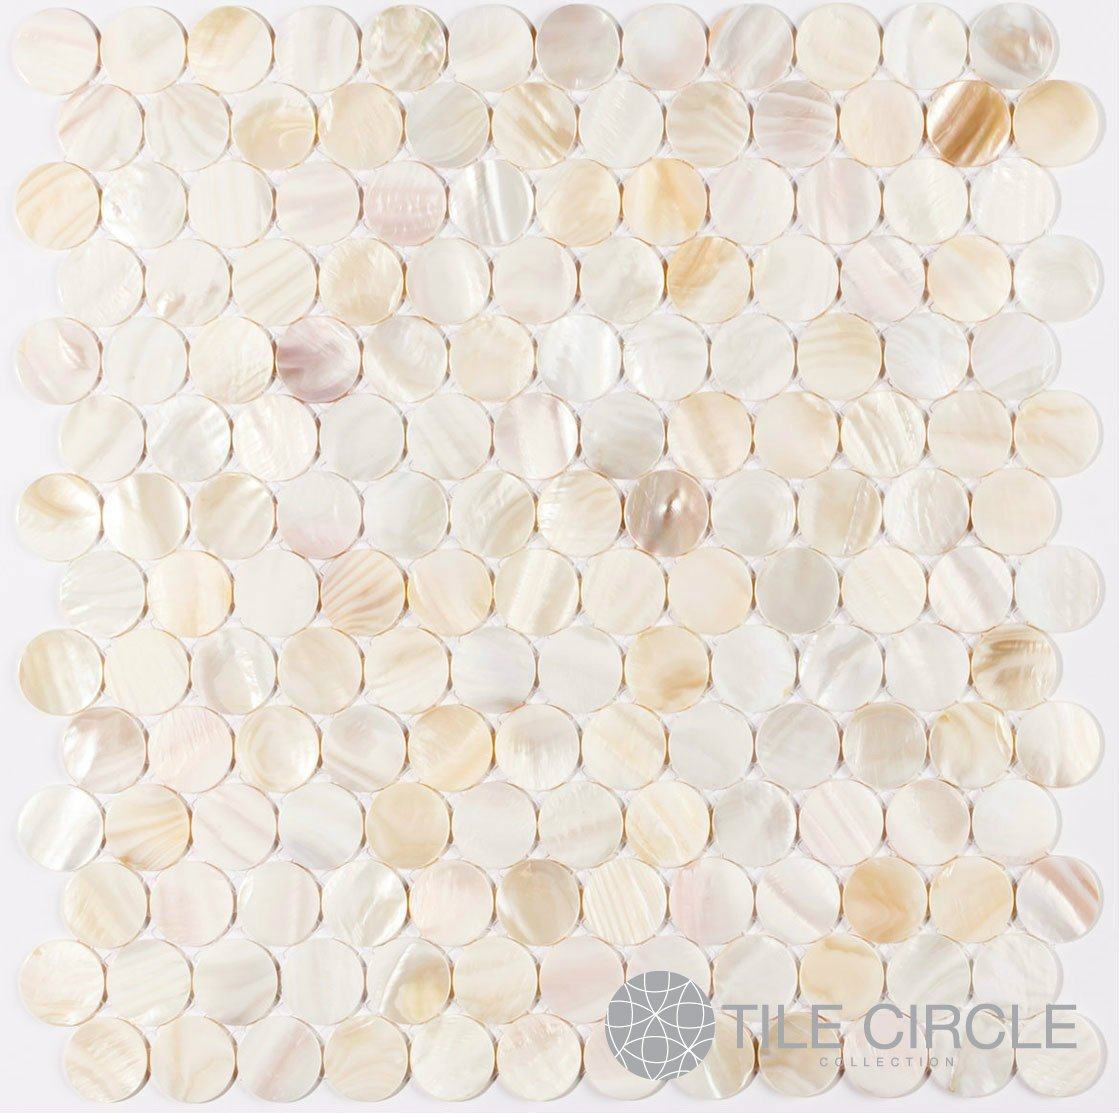 Genuine Mother of Pearl Shell Tile Natural Varied 1'' Circles (On a 12'' X 12'' Mesh) for Backsplash and Bathroom Walls and Floors